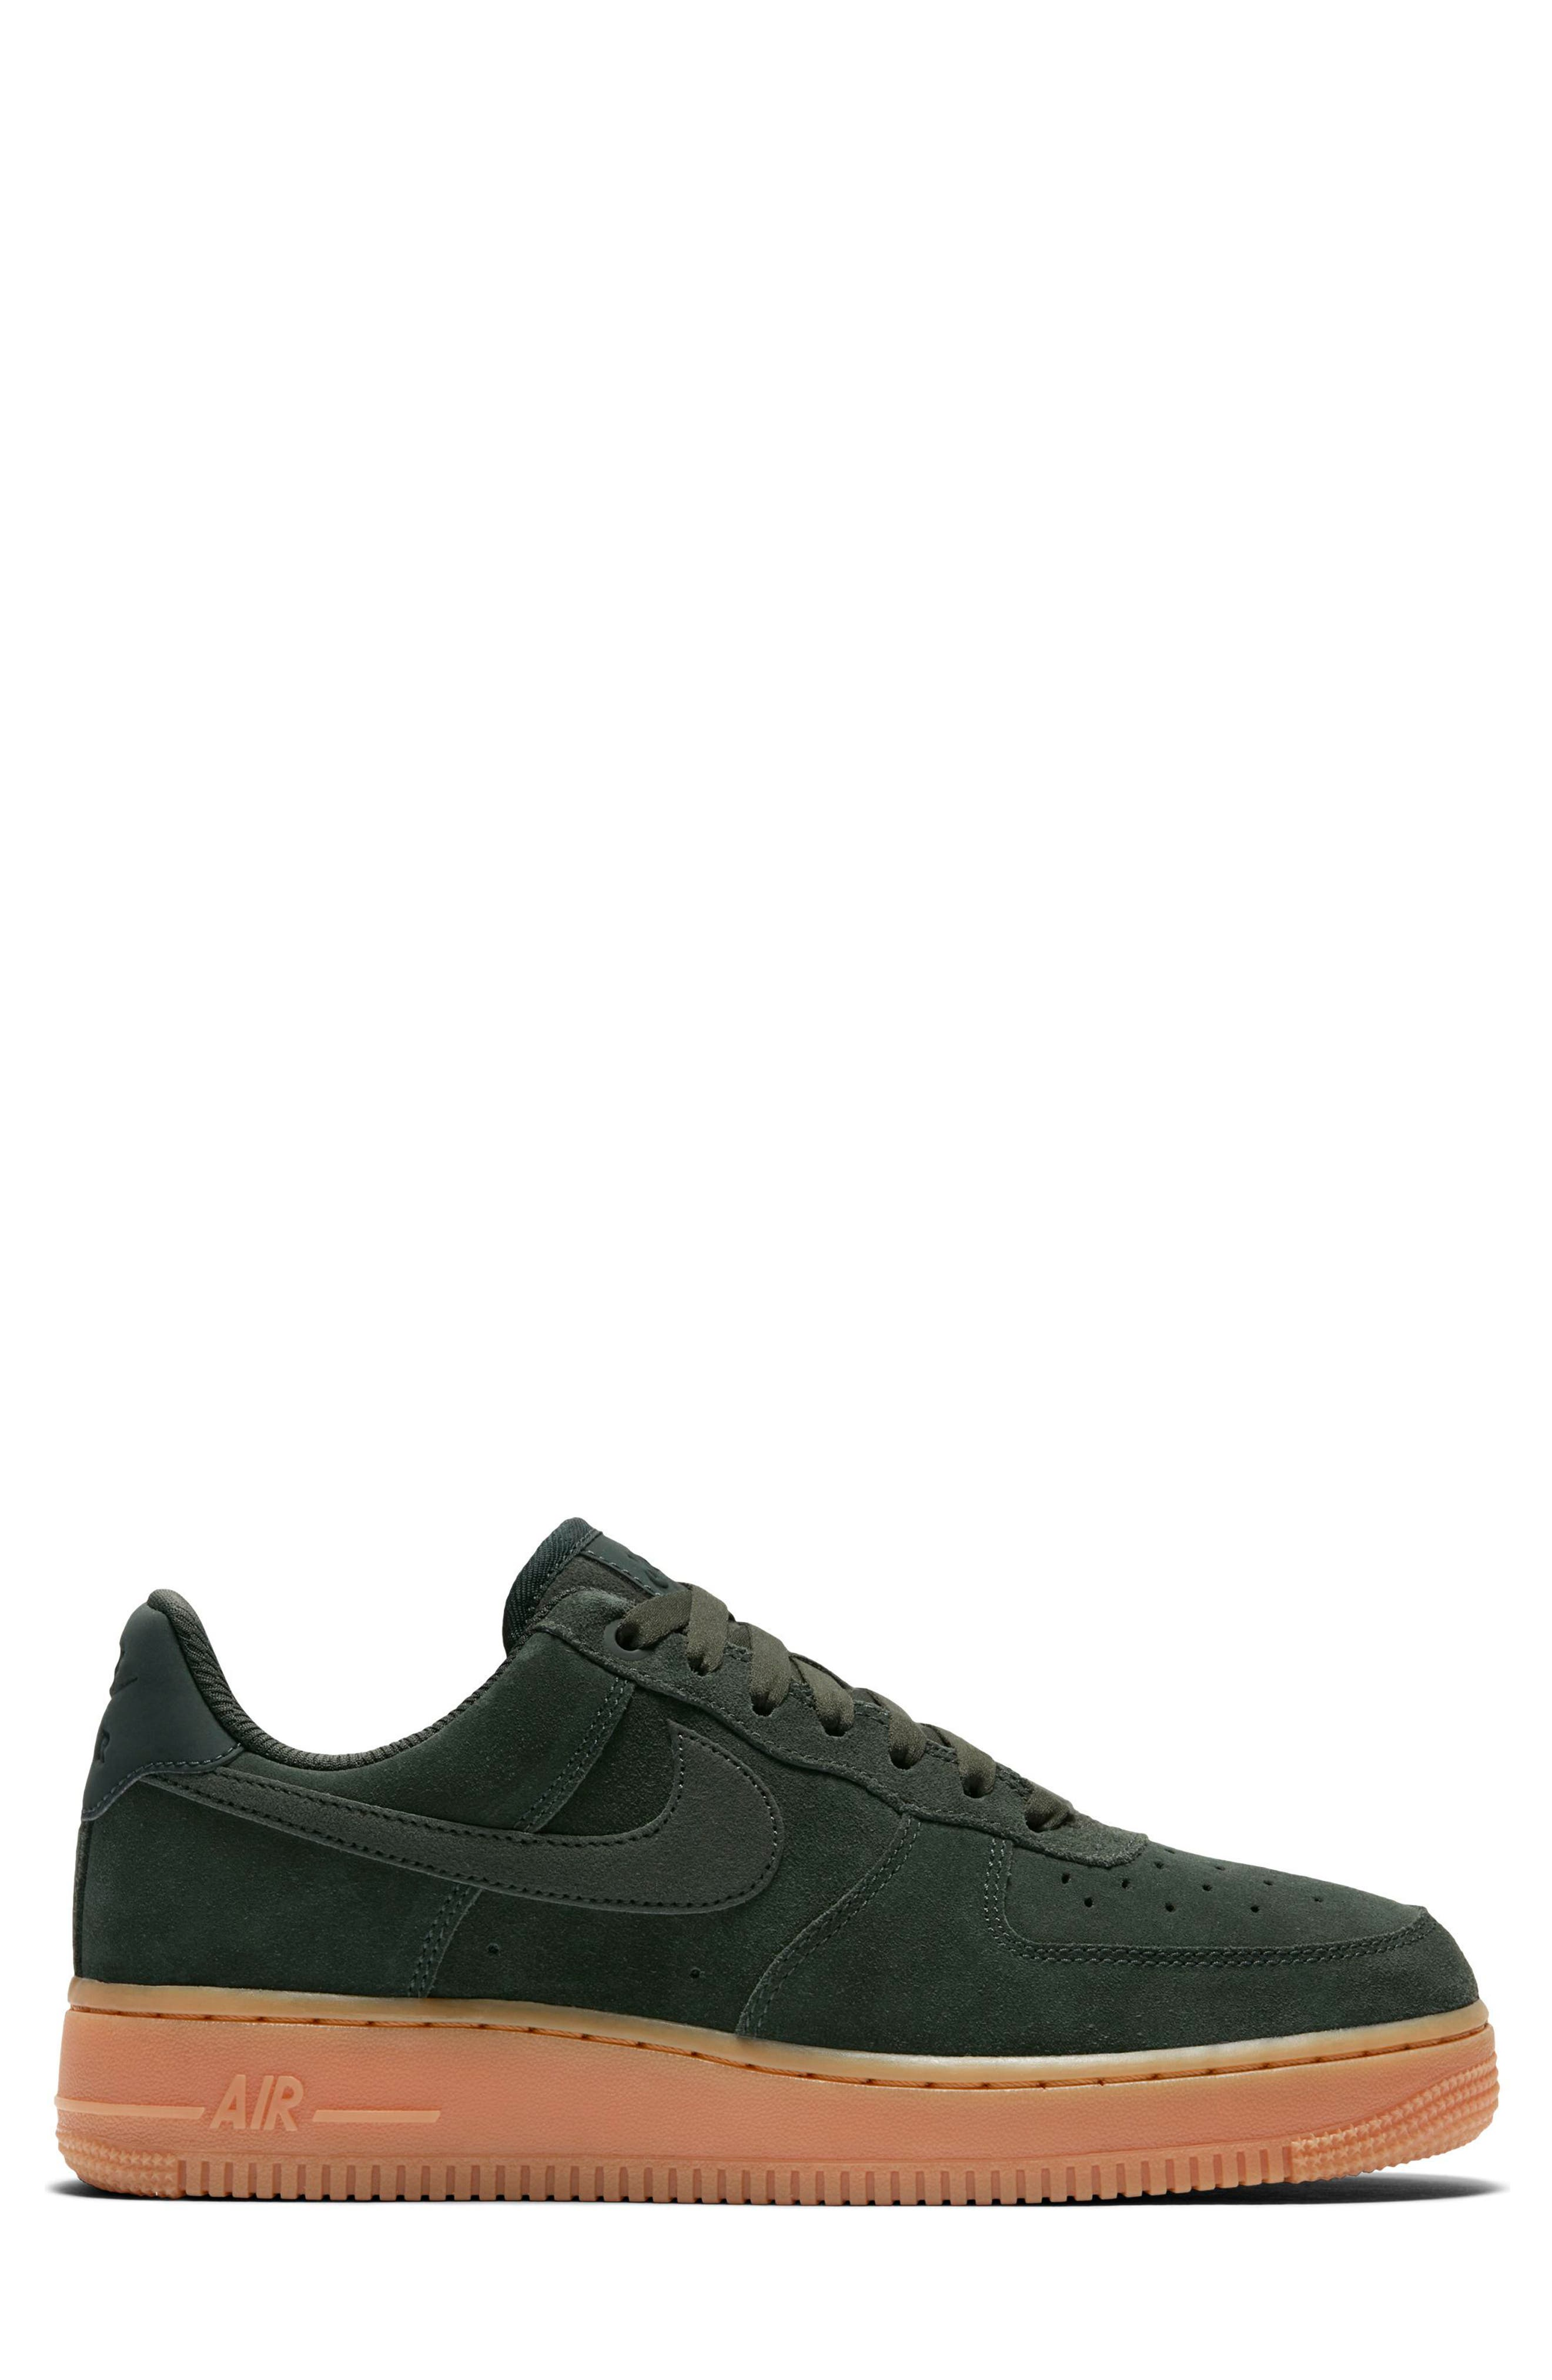 Air Force 1 '07 SE Sneaker,                             Alternate thumbnail 2, color,                             Outdoor Green/ Outdoor Green